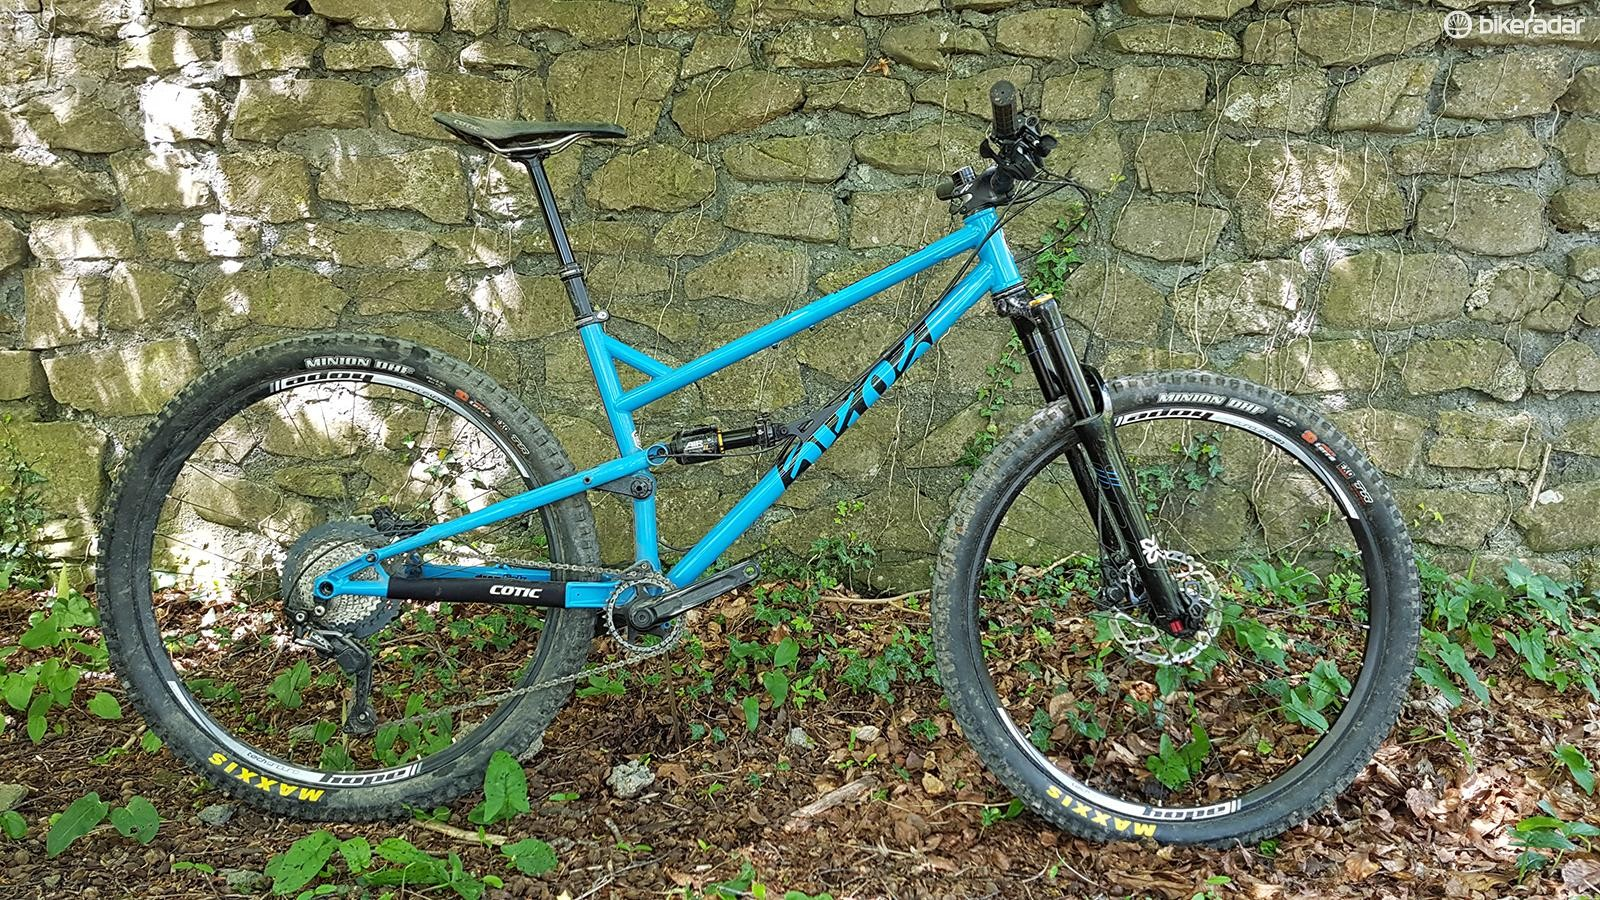 The Cotic FlareMax is a short travel, super aggressive 29er trail bike